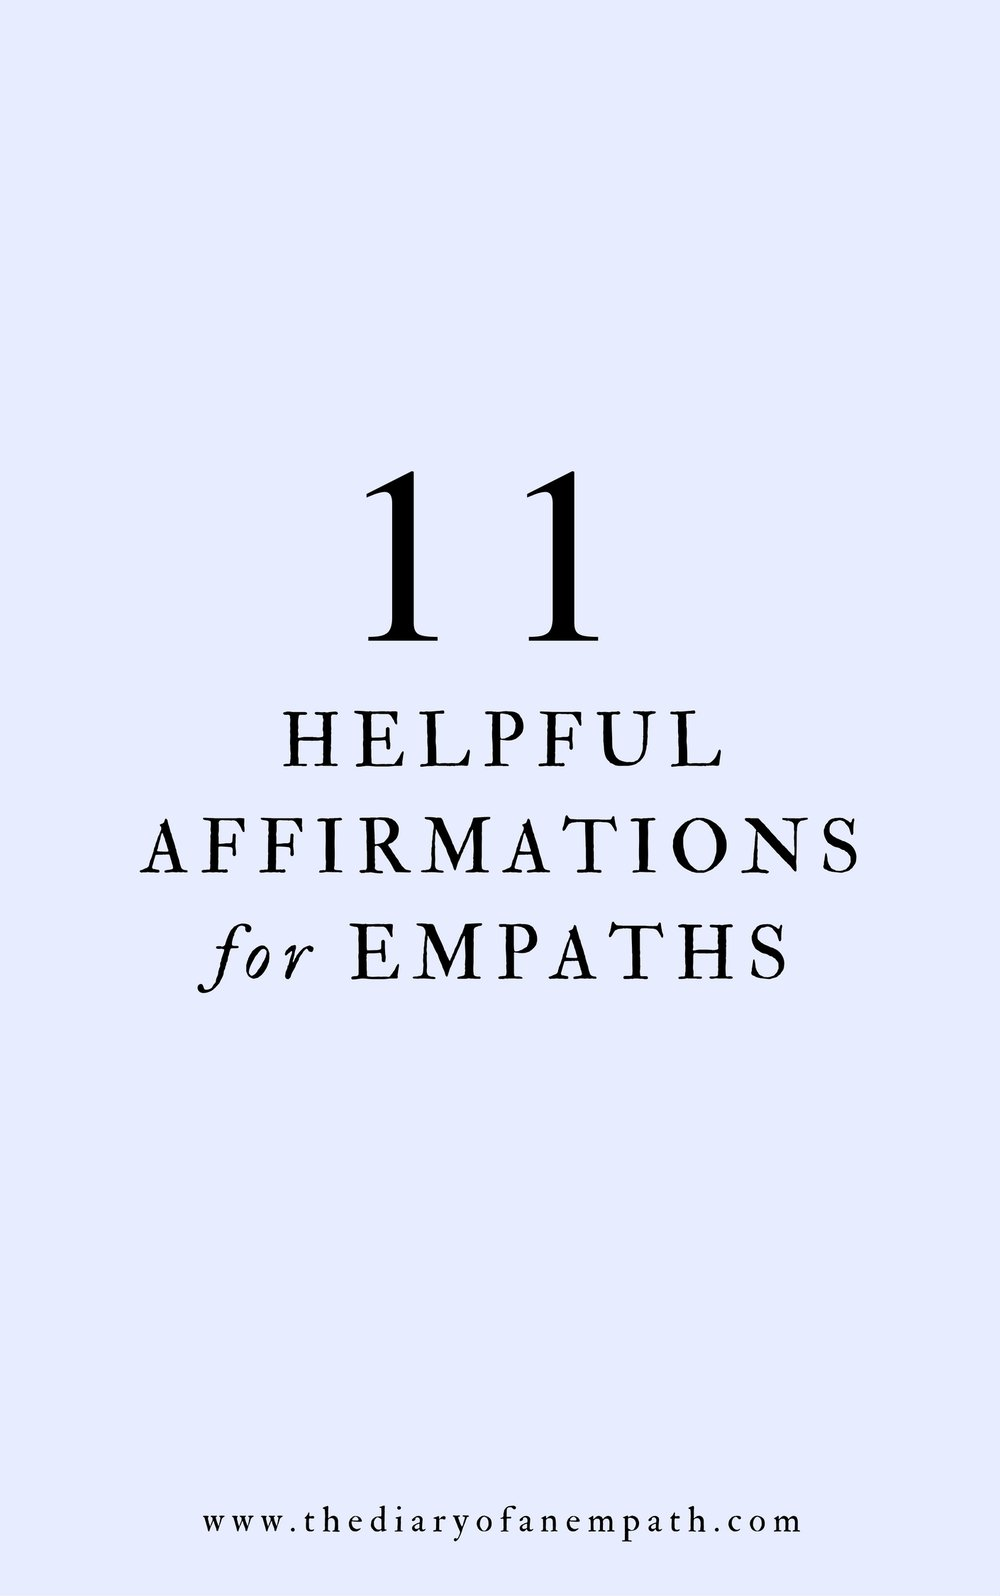 helpful affirmations for empaths, thediaryofanempath.com